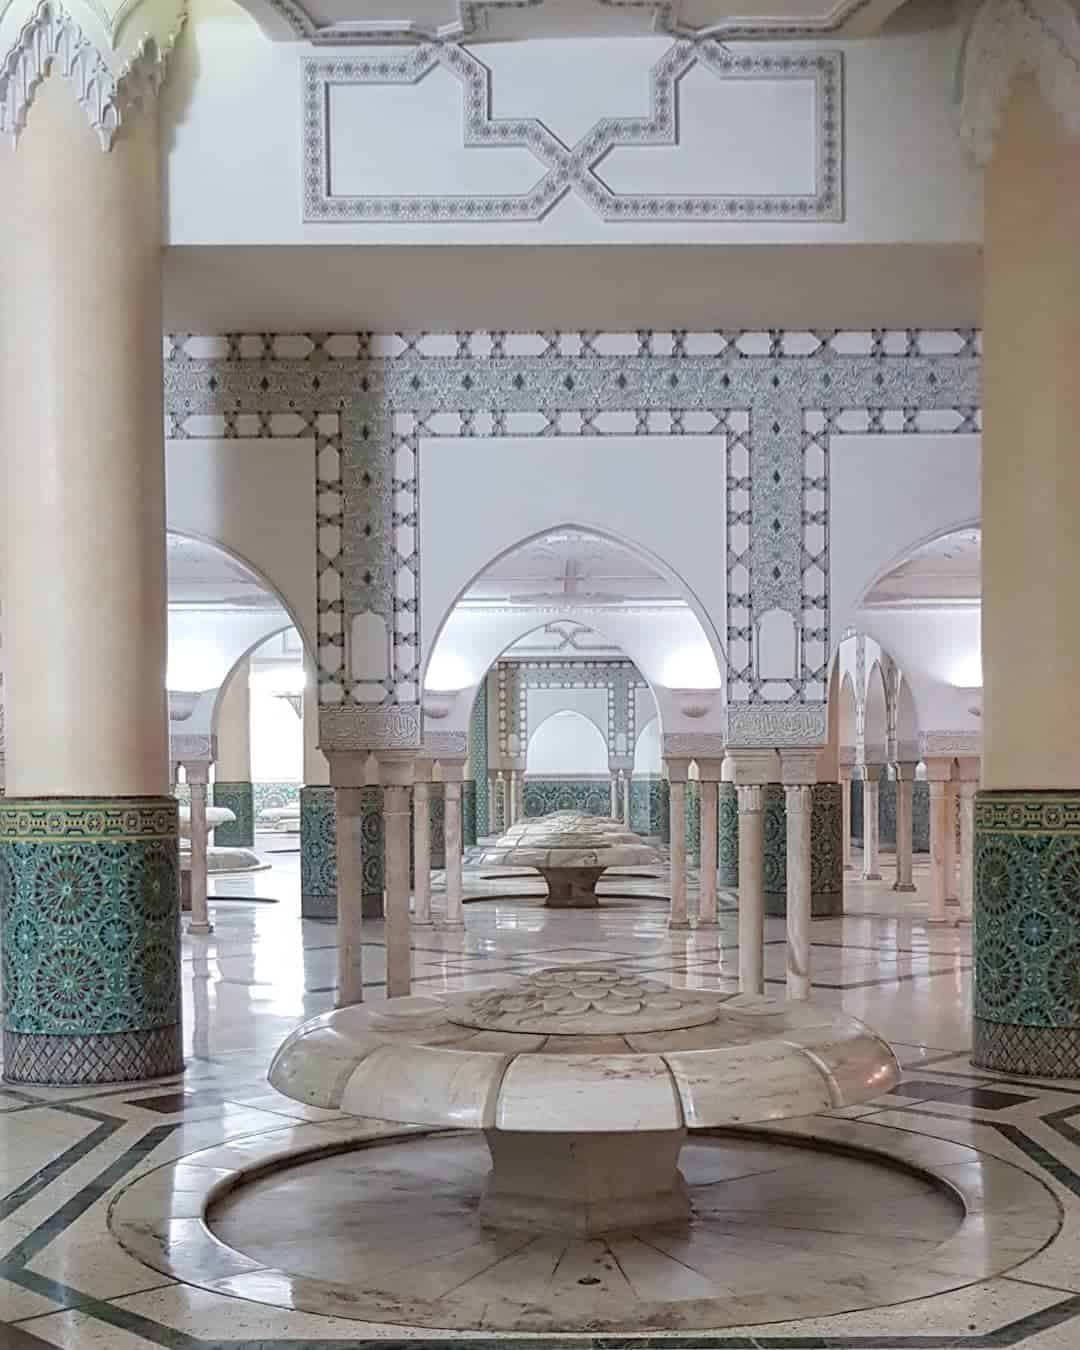 Morocco Itinerary: Mosque Hassan